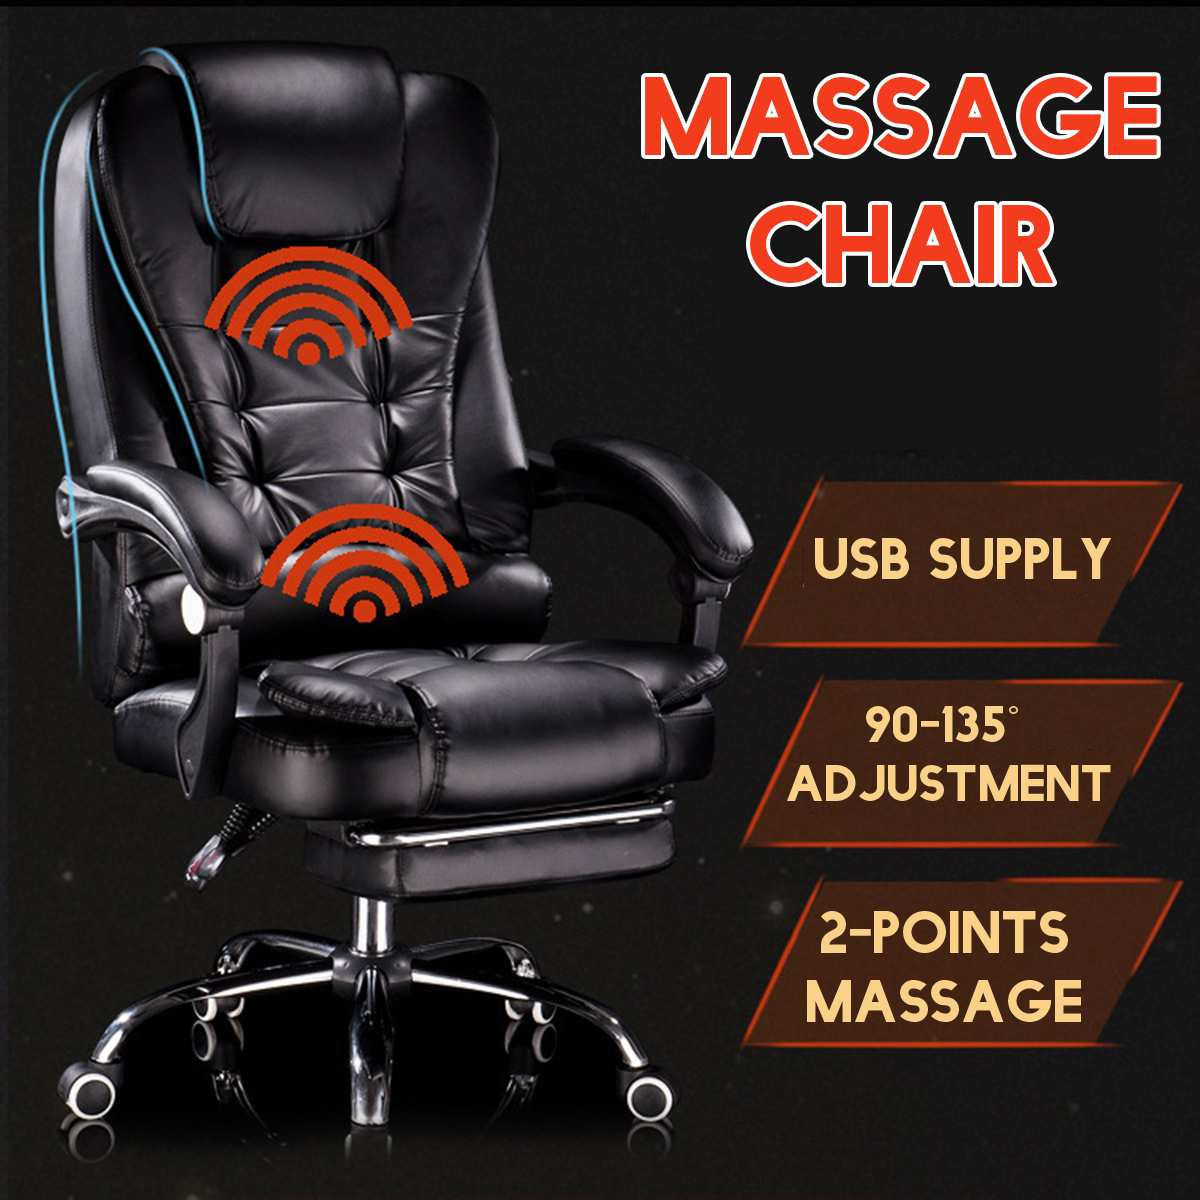 High Quality Office Chairs Massage Chair Ergonomic Leather Computer Gaming Chair Internet Cafe Seat Household Reclining Chair